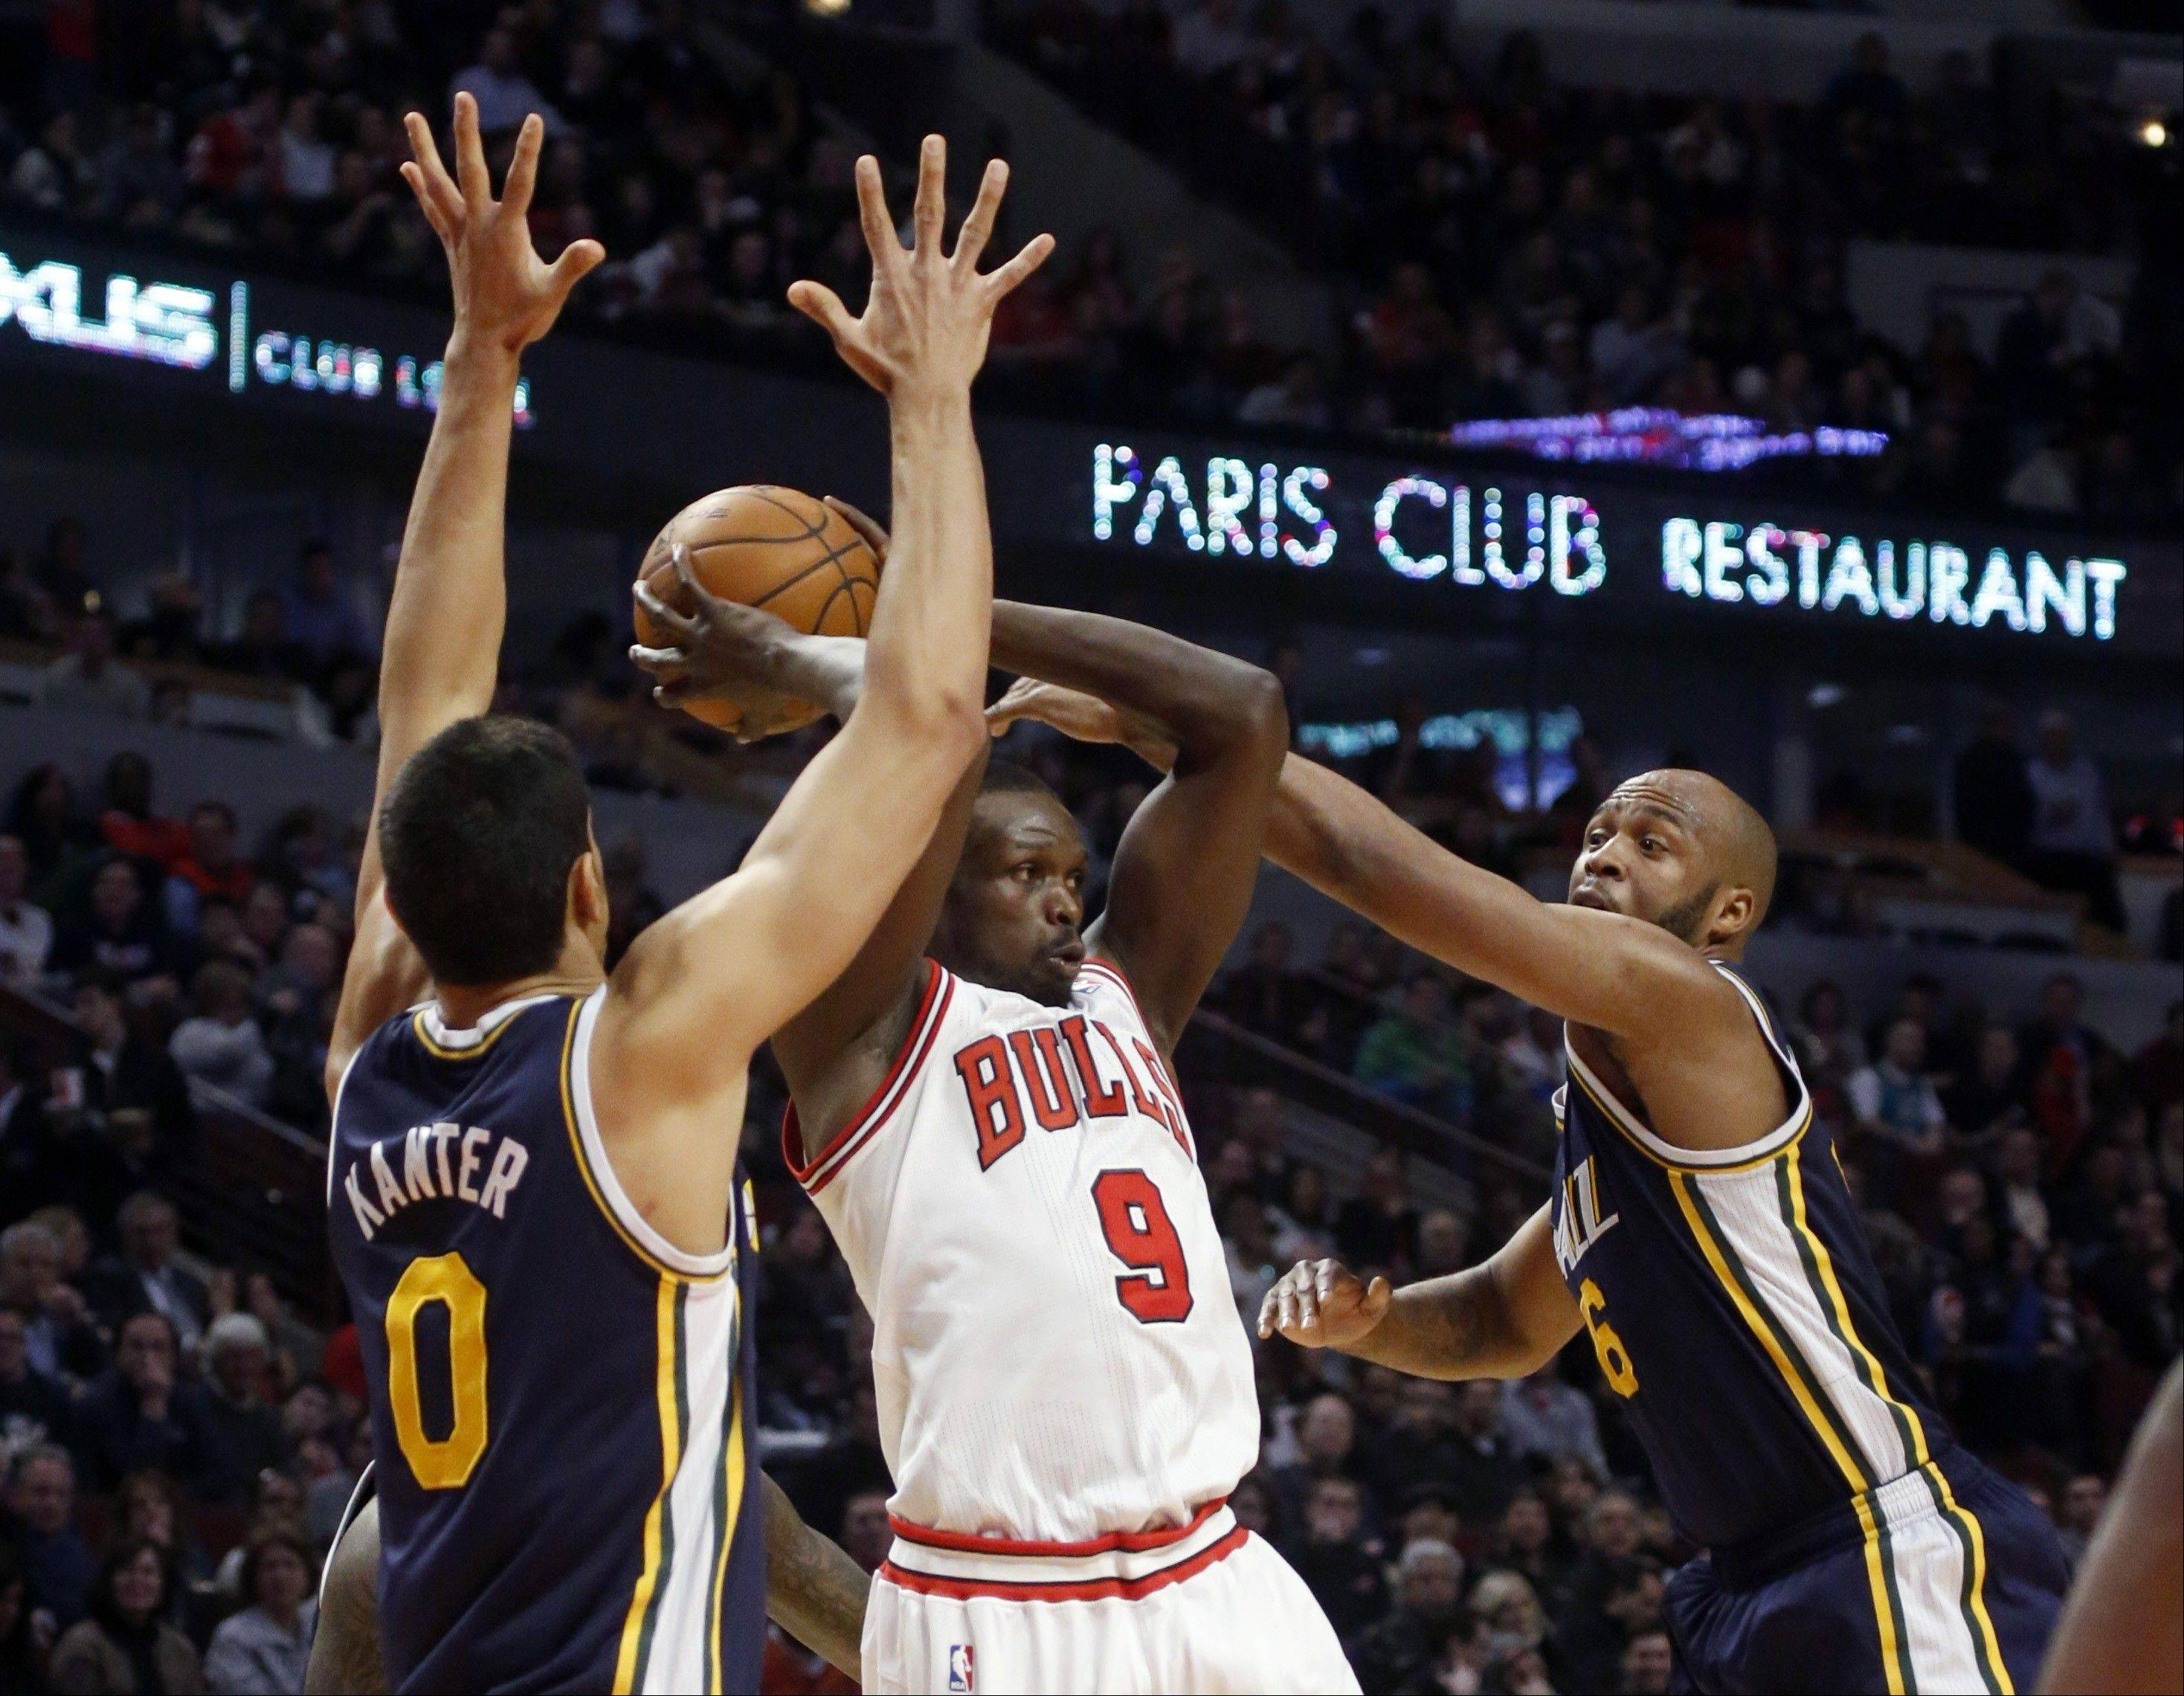 Chicago Bulls forward Luol Deng (9) is pressured by Utah Jazz center Enes Kanter (0) and Jamaal Tinsley (6) during the first half of an NBA basketball game on Friday, March 8, 2013, in Chicago.